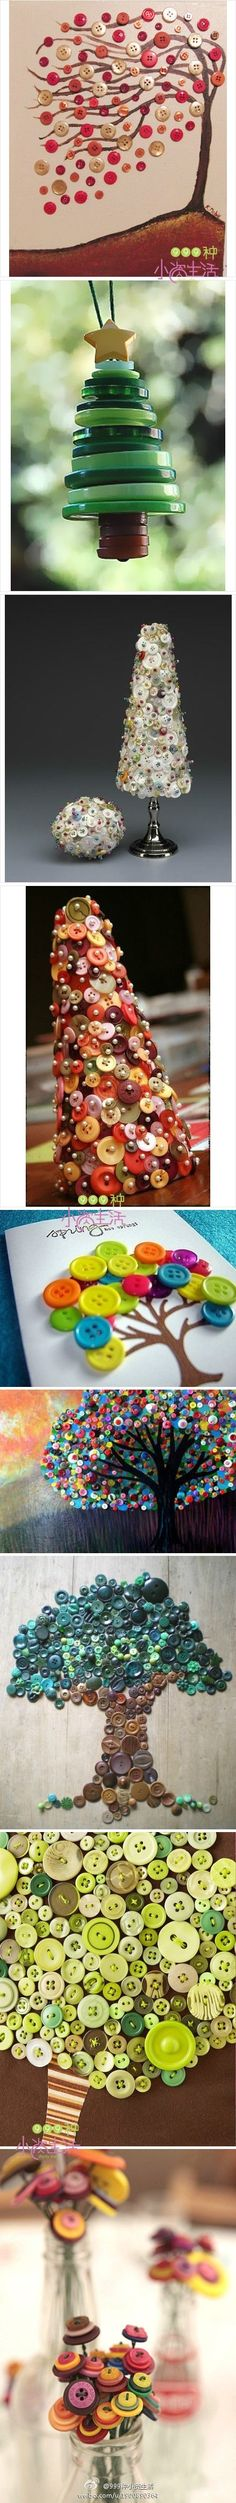 Button crafts#Repin By:Pinterest++ for iPad#